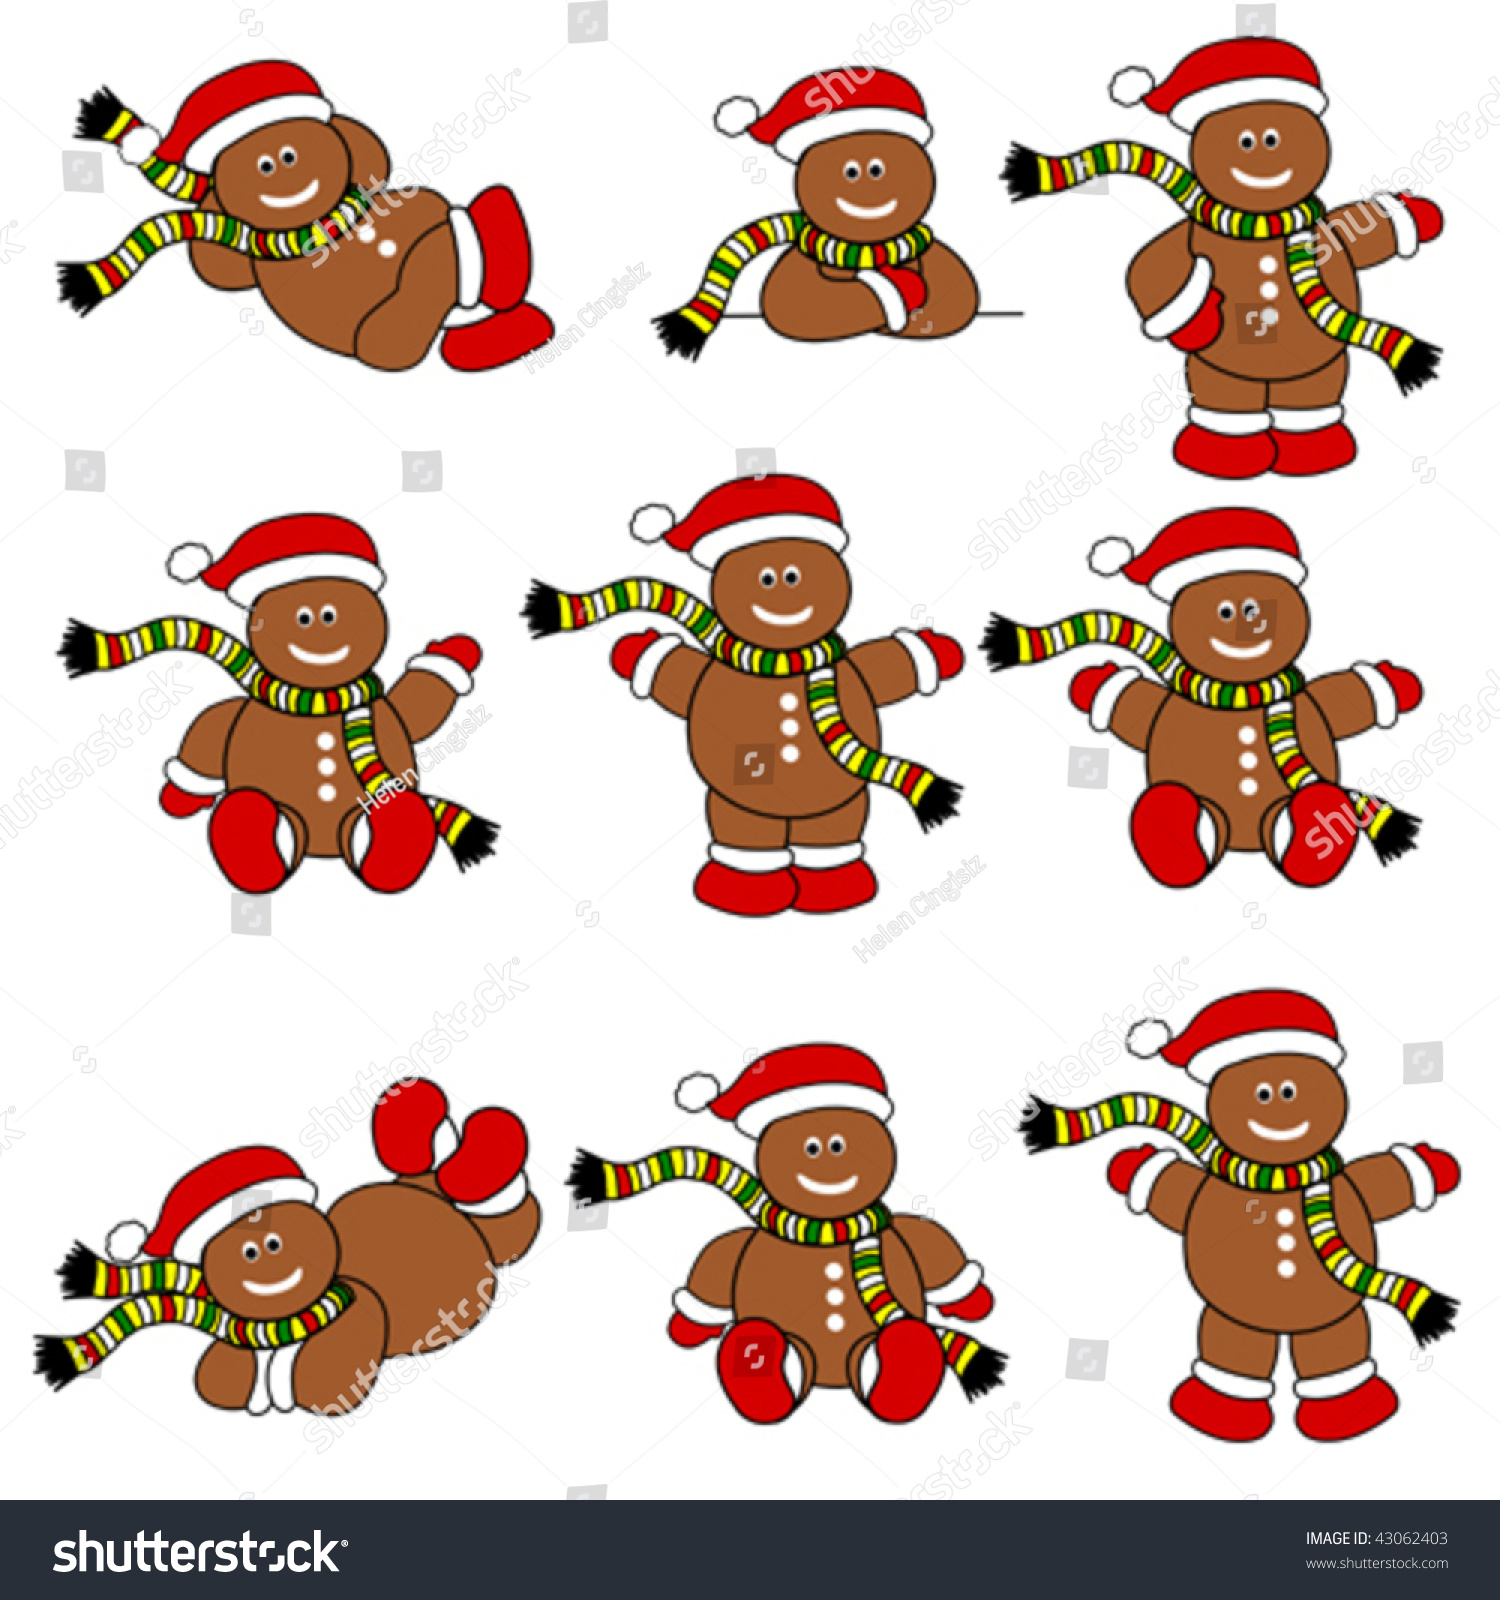 cute christmas gingerbread man set - Christmas Gingerbread Man